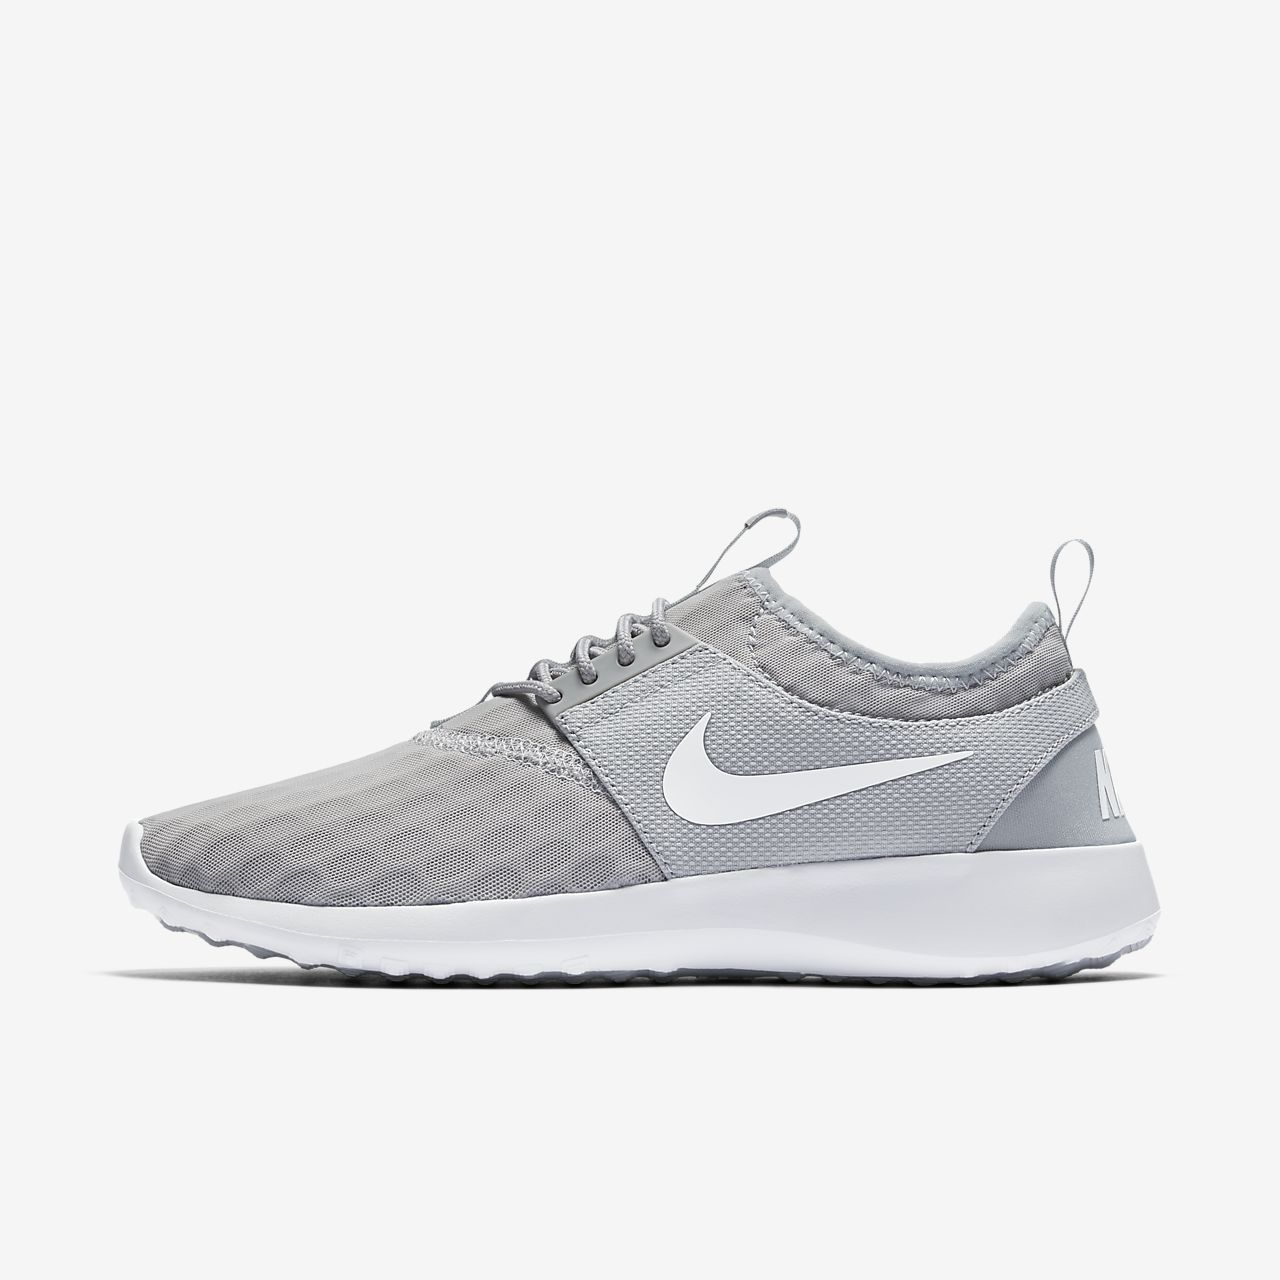 Women Nike Shoes   Buy Nike Shoes   Sneakers - Bluelilyandblue.com 029539708f